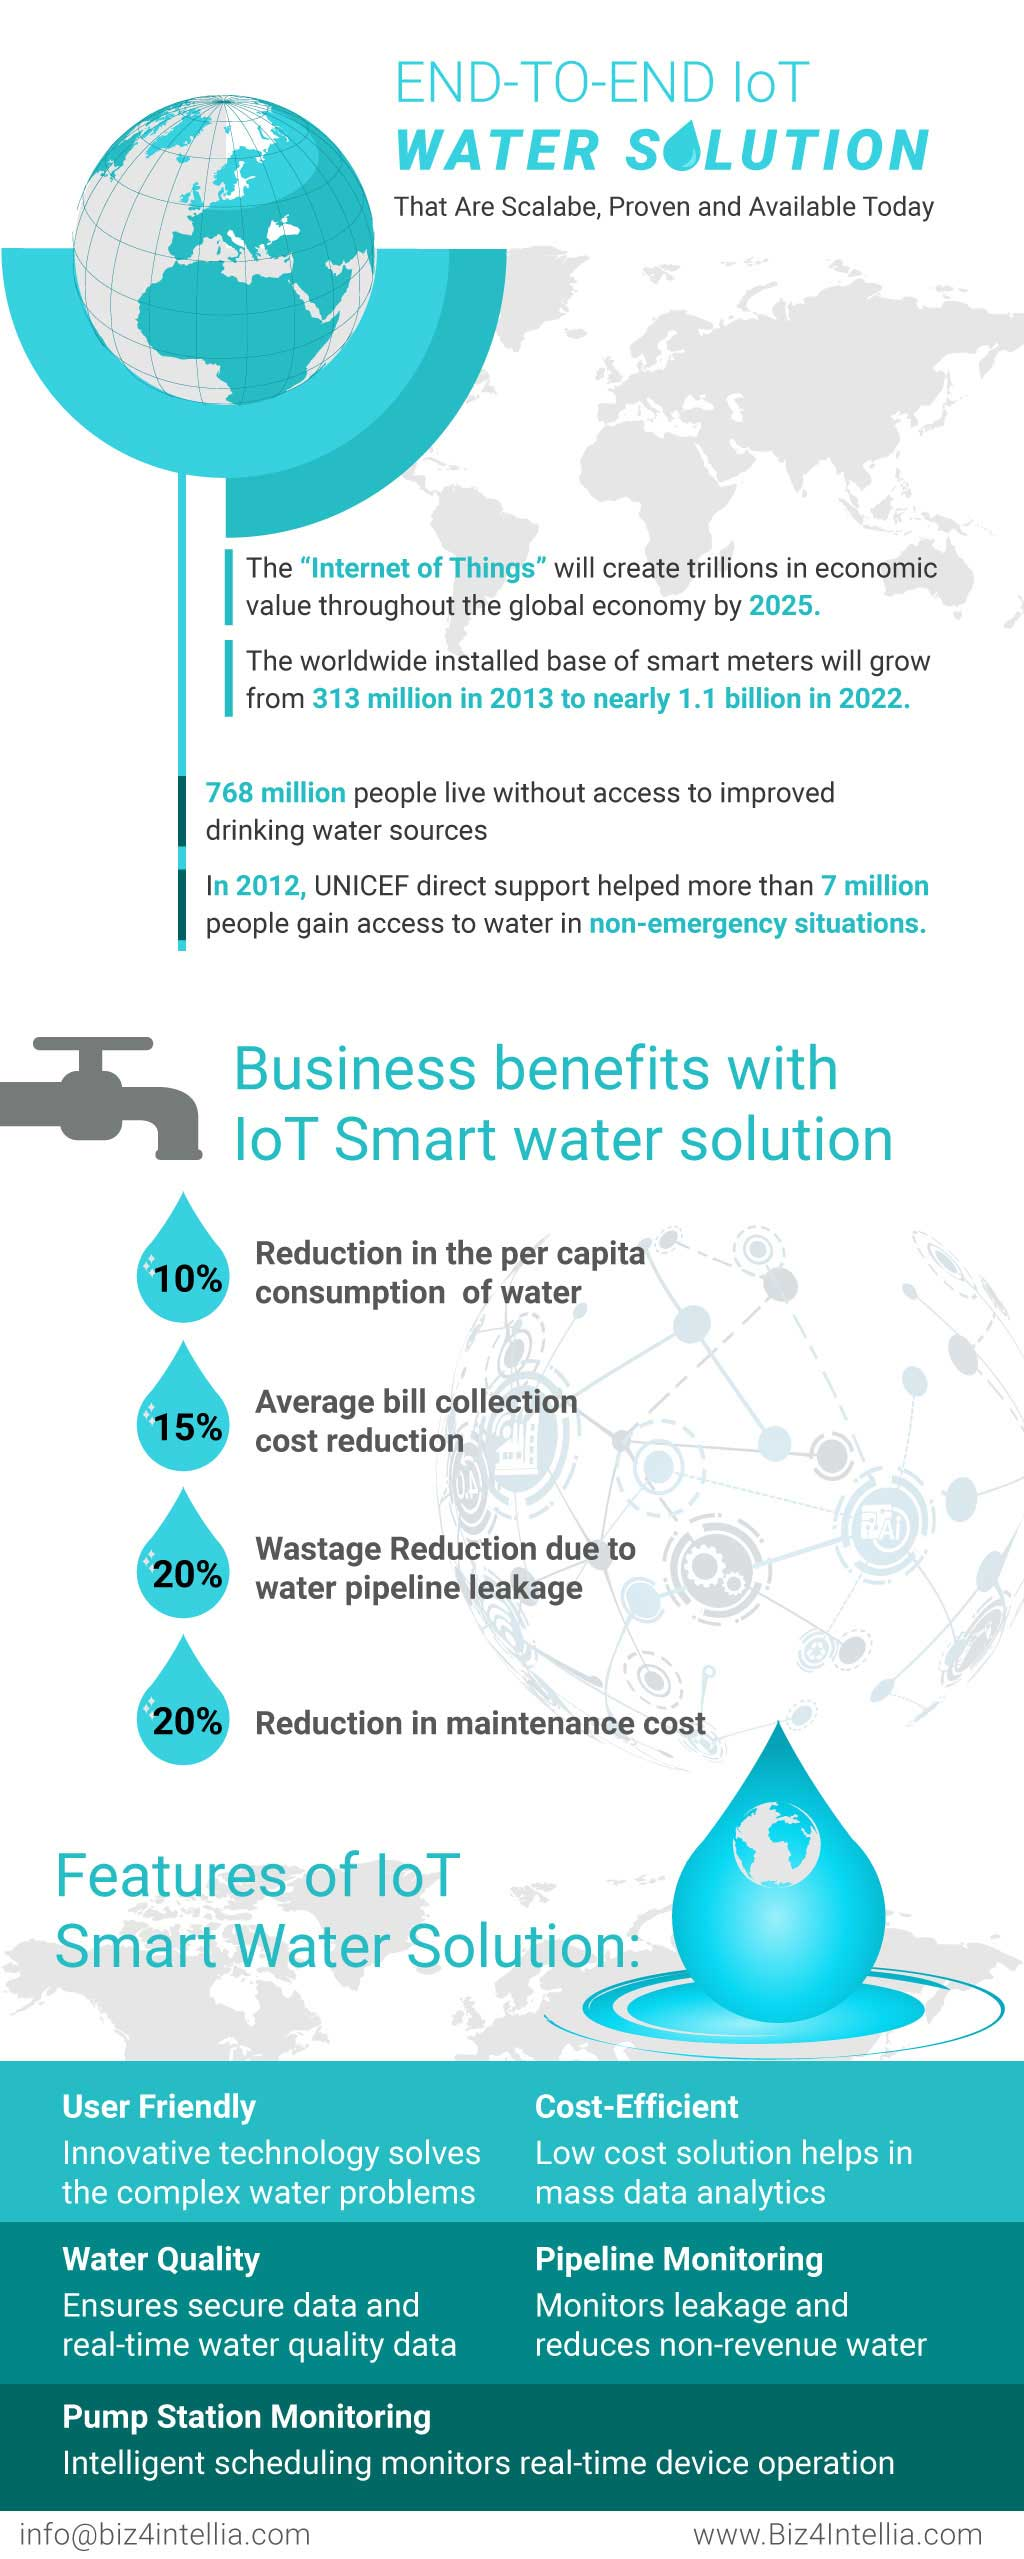 Business Benefits with IoT Smart Water Solution